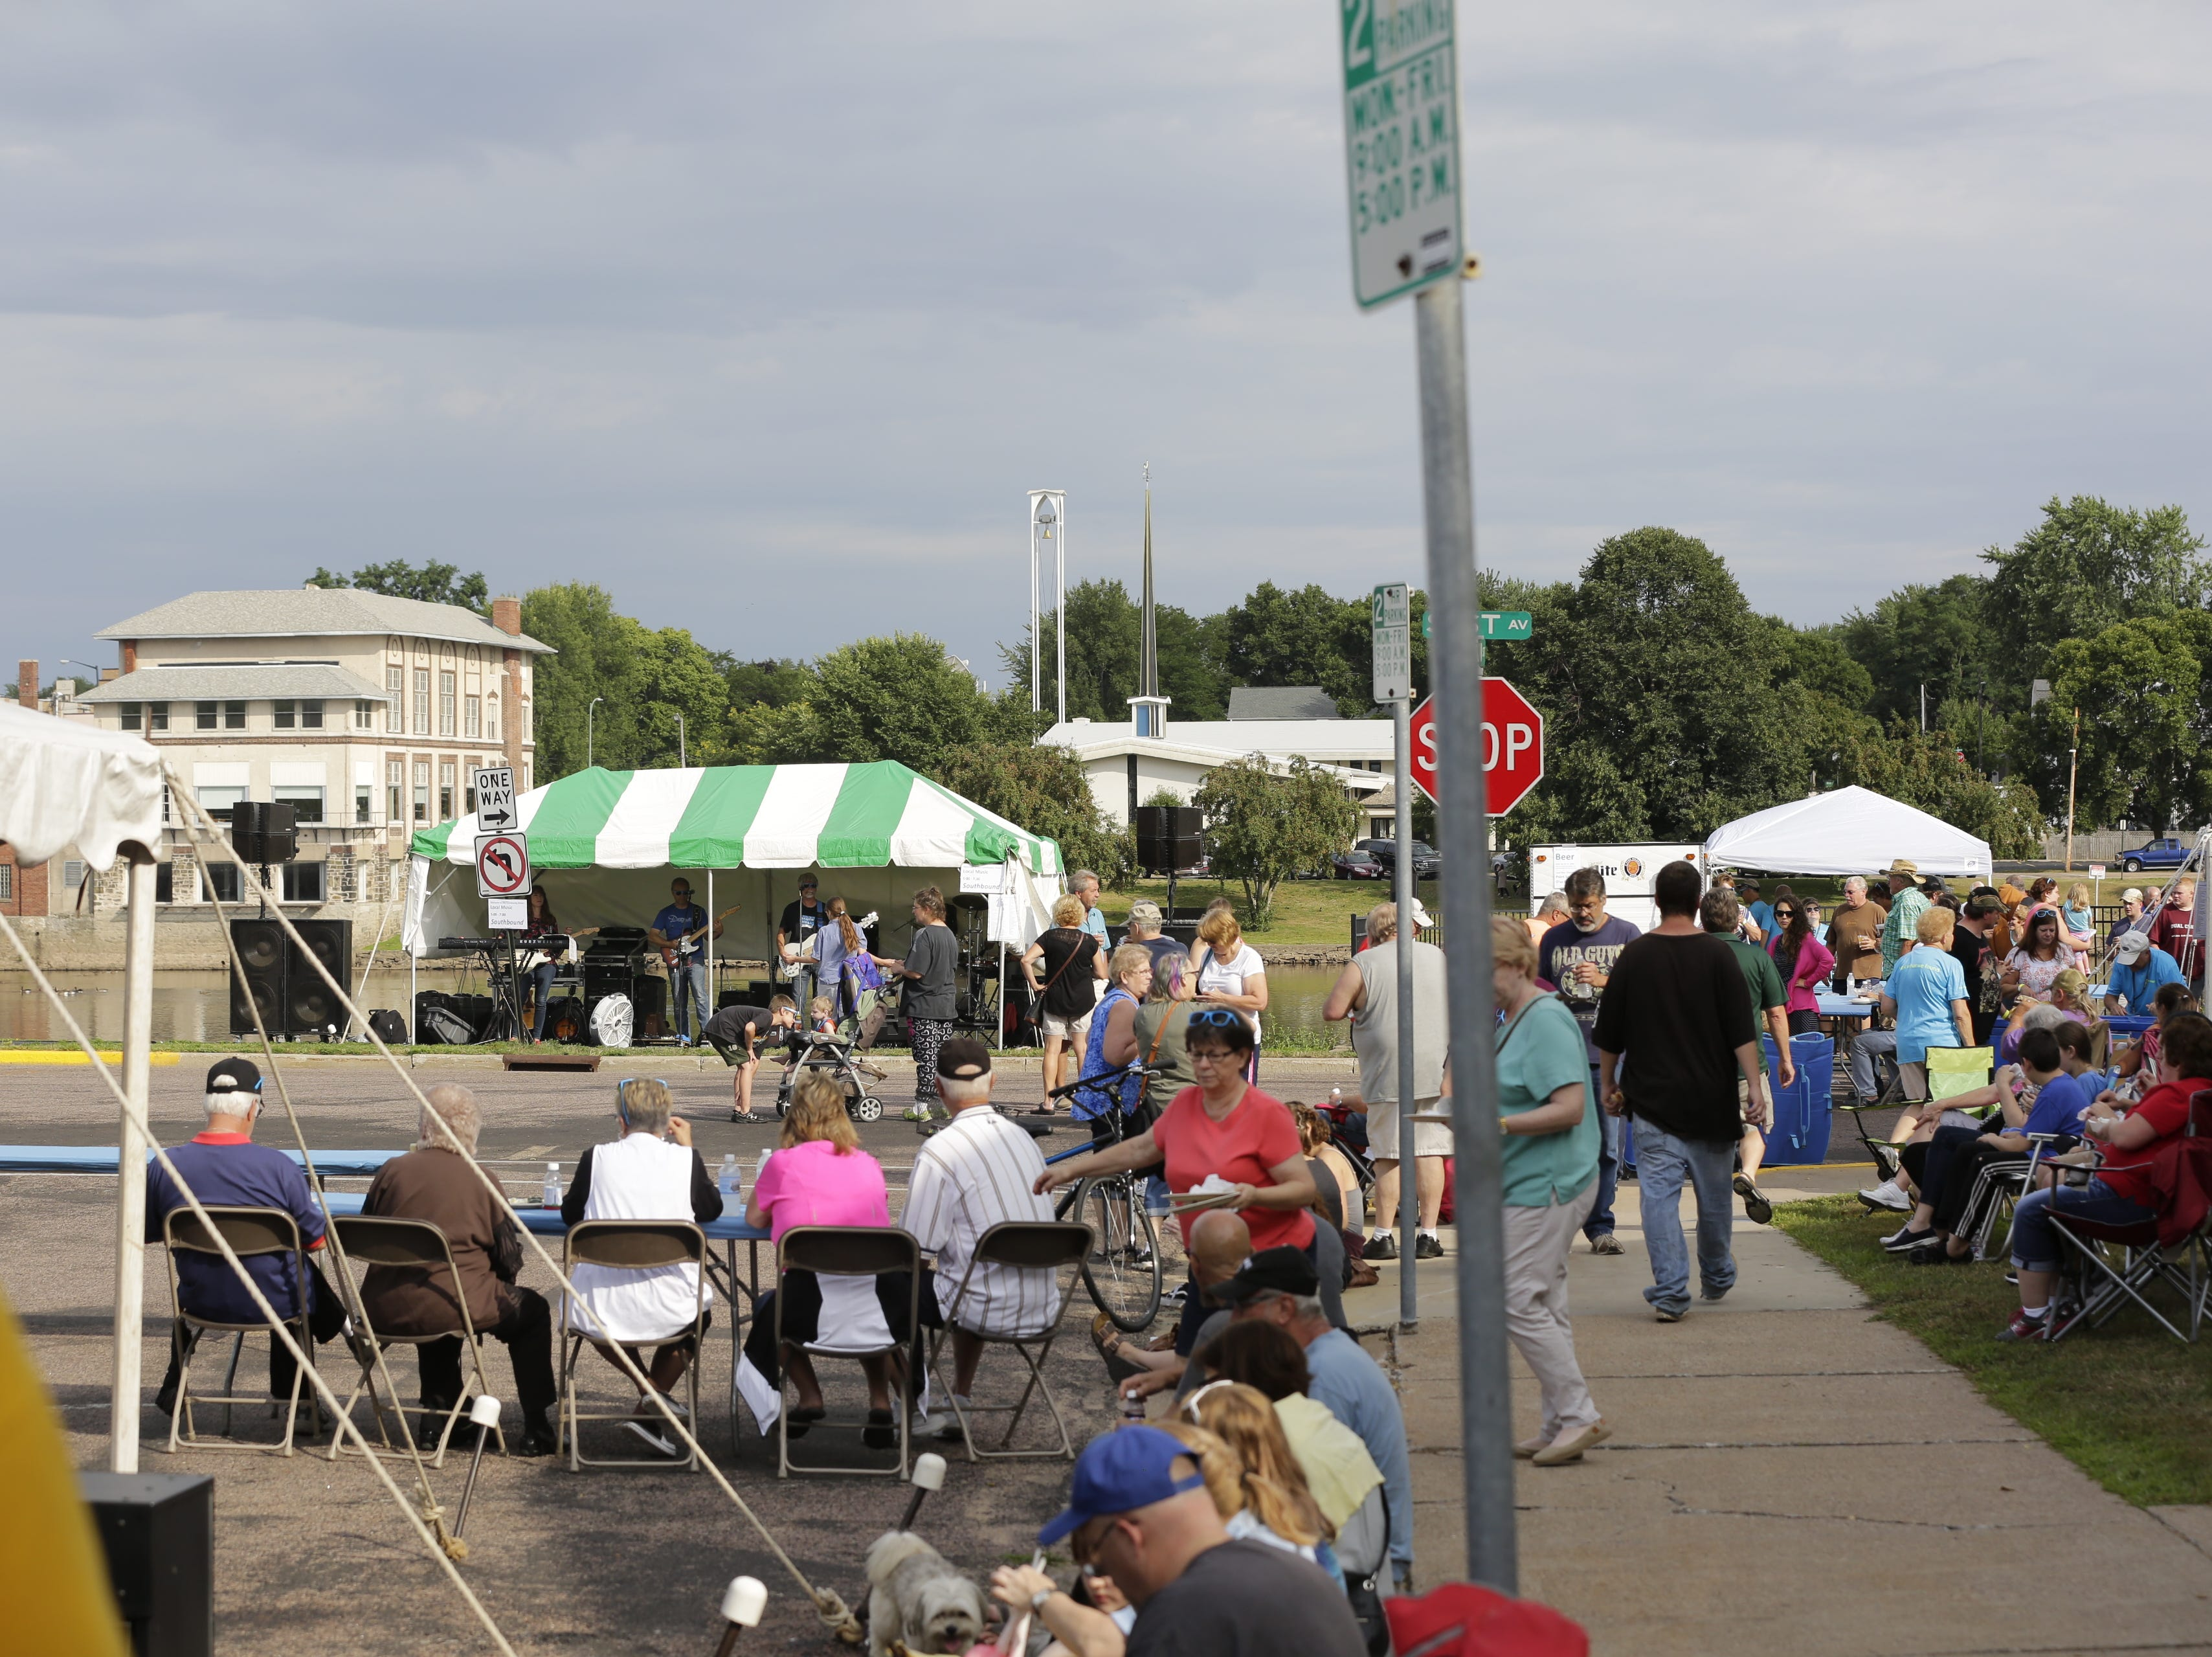 Crowds gather to hear local band Southbound play at the Wisconsin Rapids community picnic on First Avenue South and Johnson Street Wednesday, August 1, 2018.